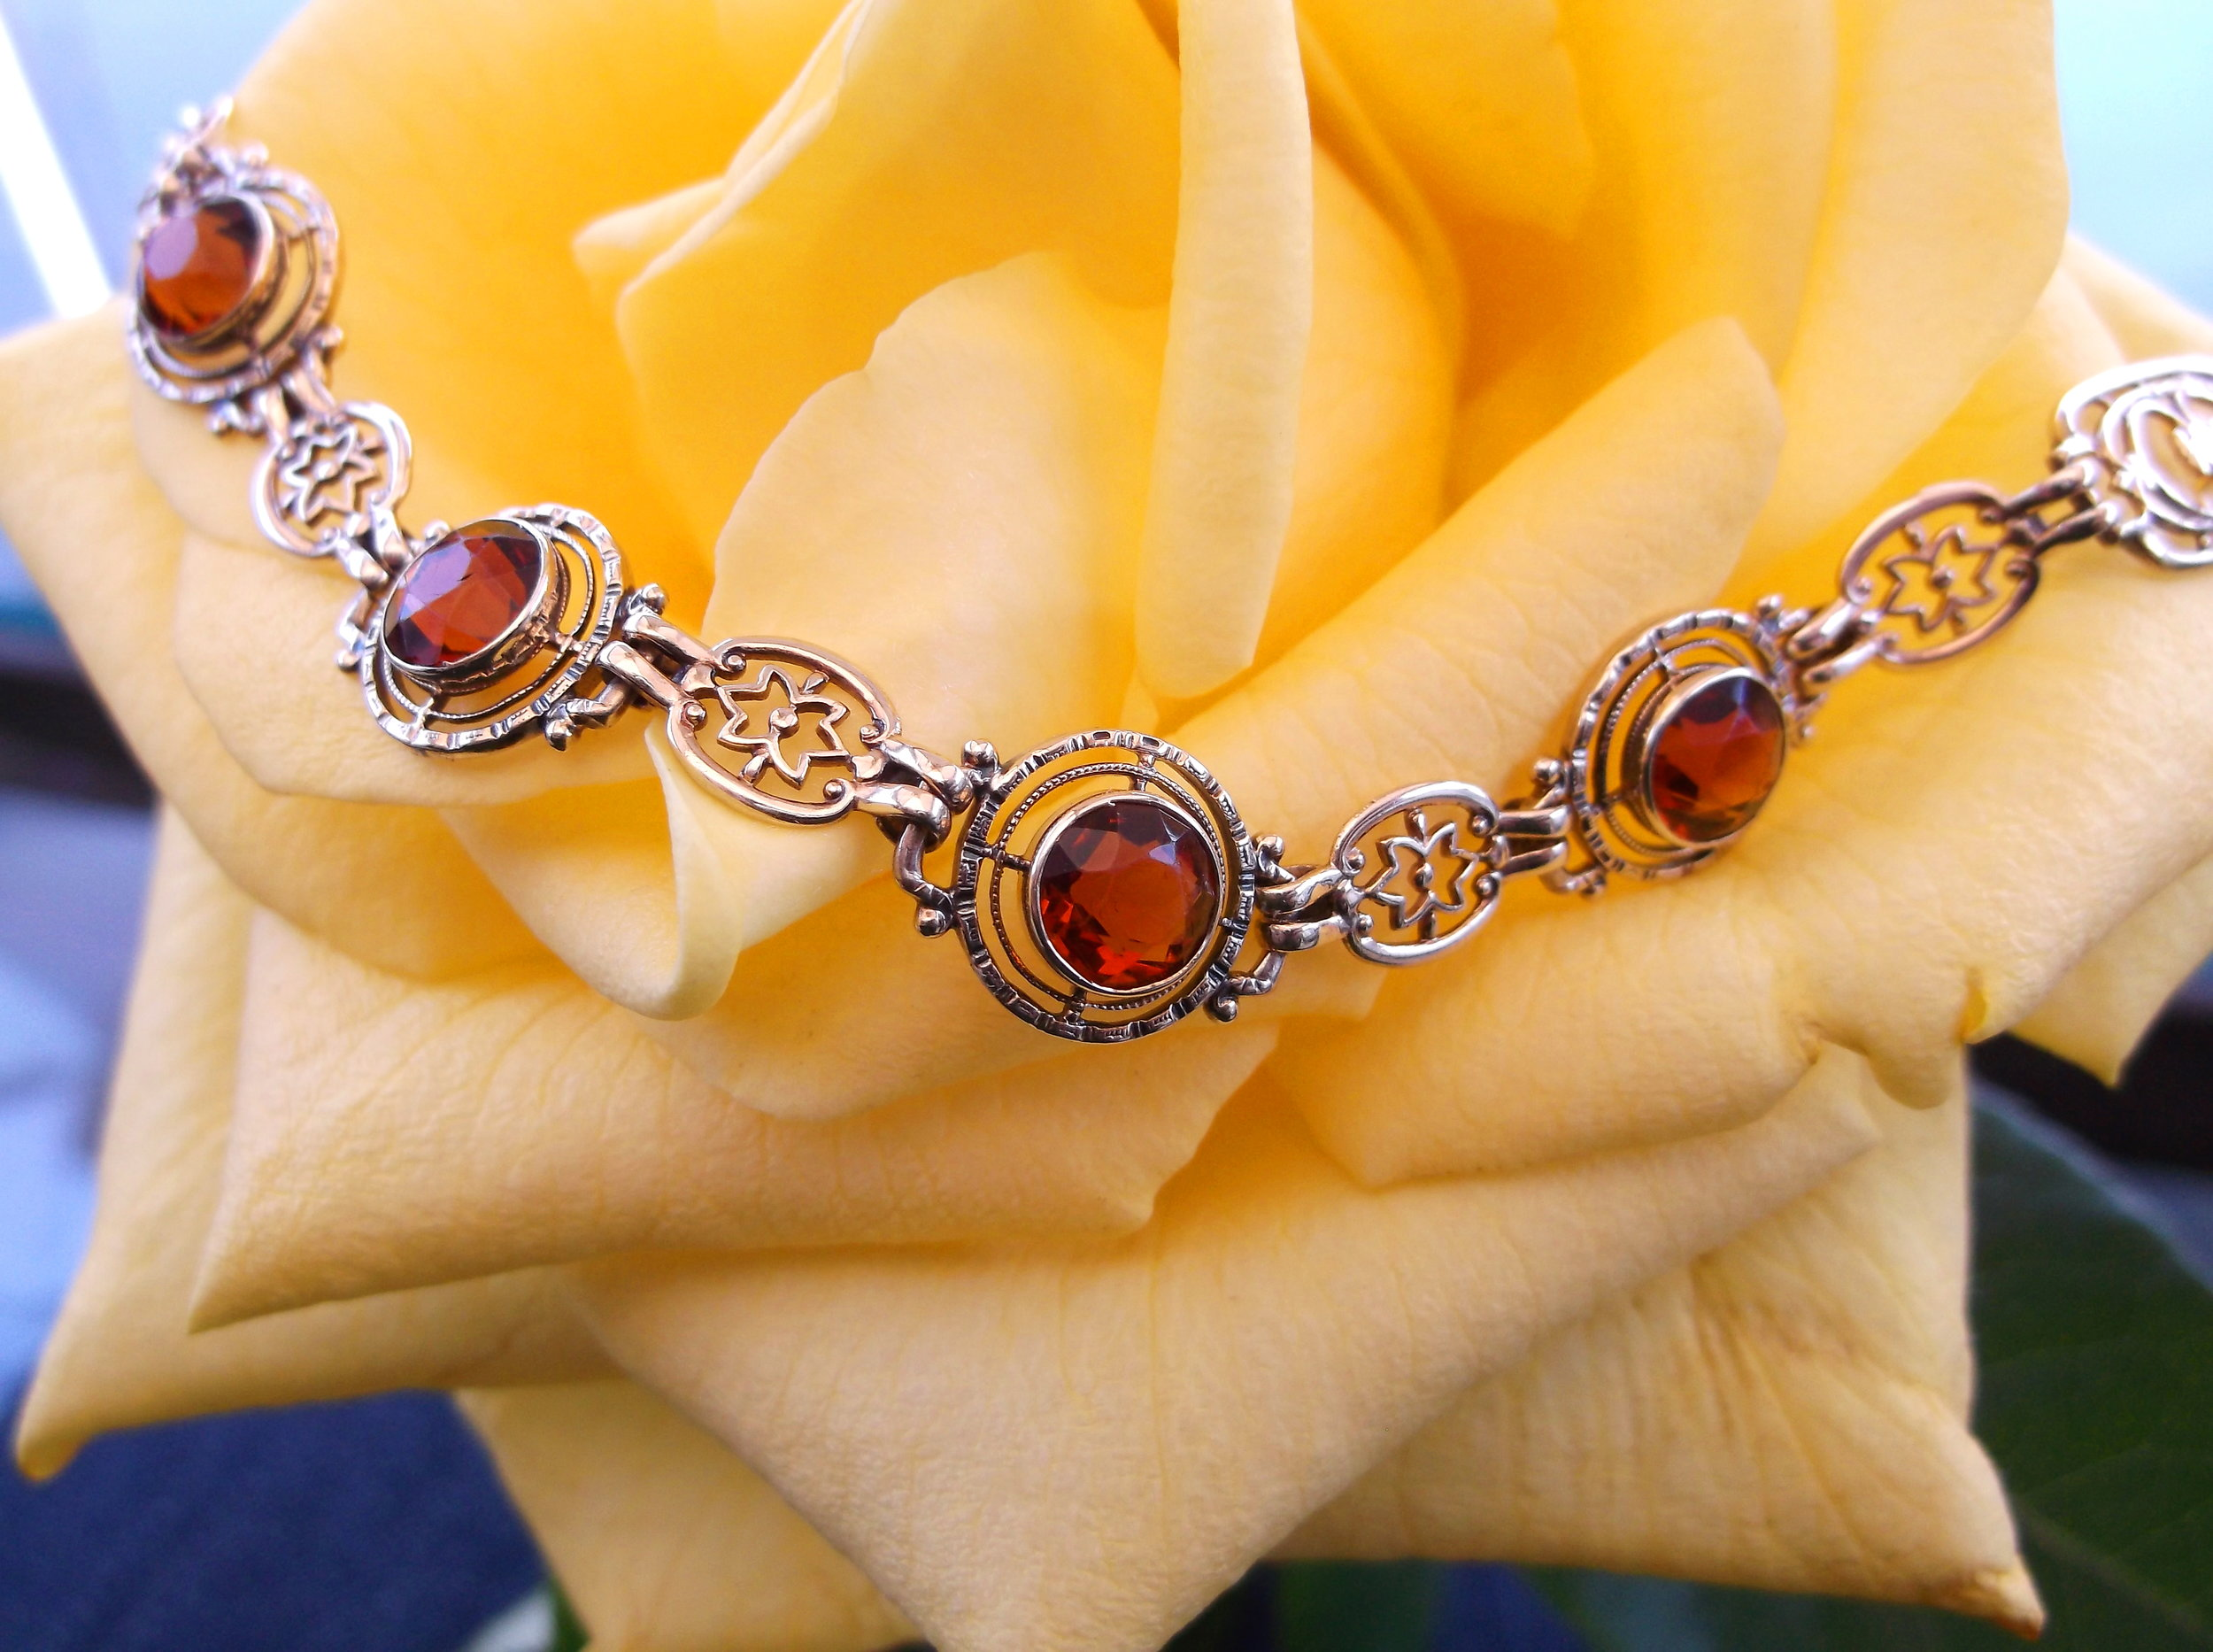 Dreamy citrine and yellow gold bracelet, set with approximately 3.75 carats total weight in citrine.